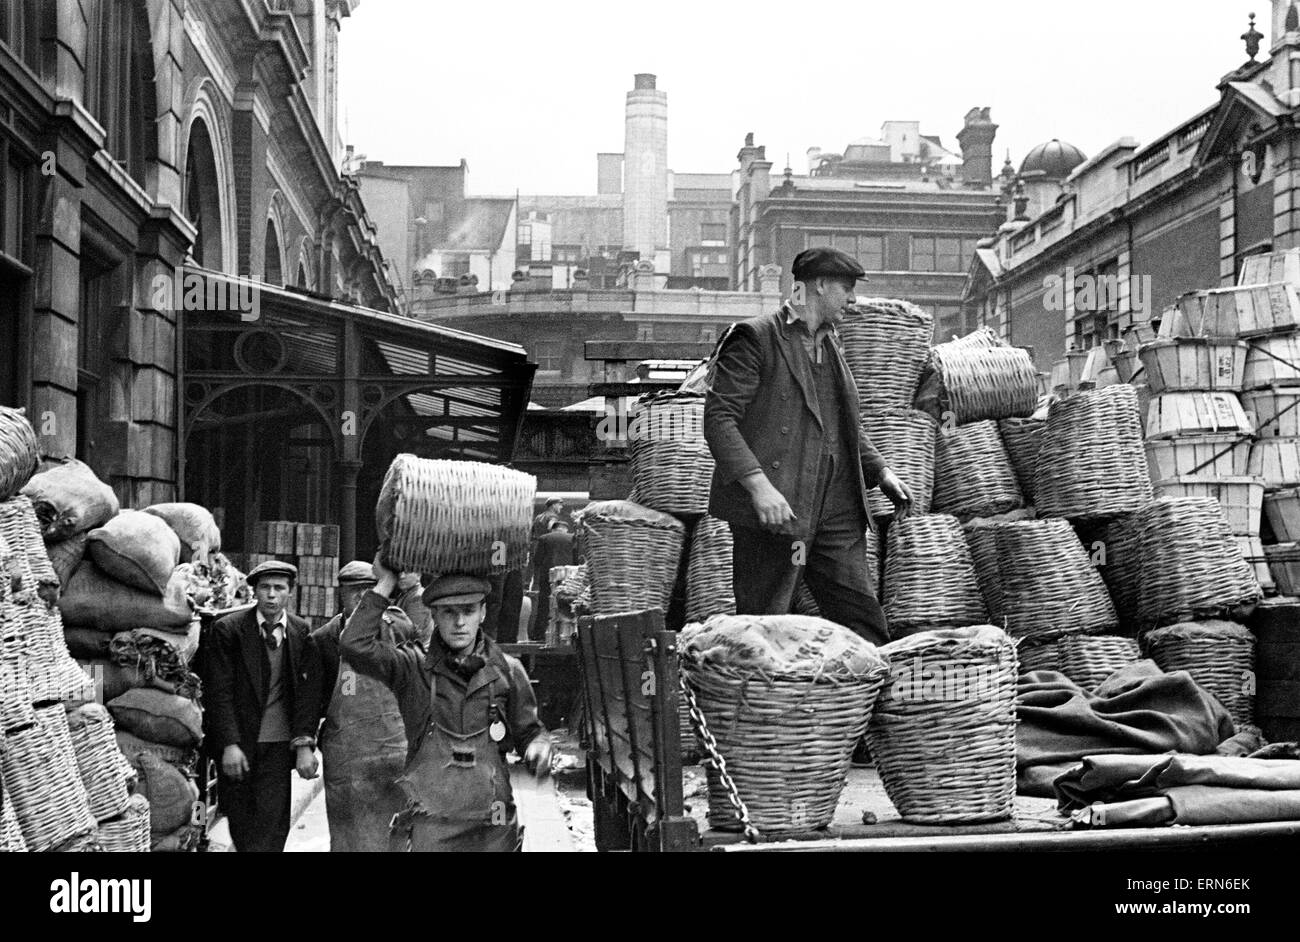 Day in the life of Covent Garden Market, central London. Circa 1948. - Stock Image